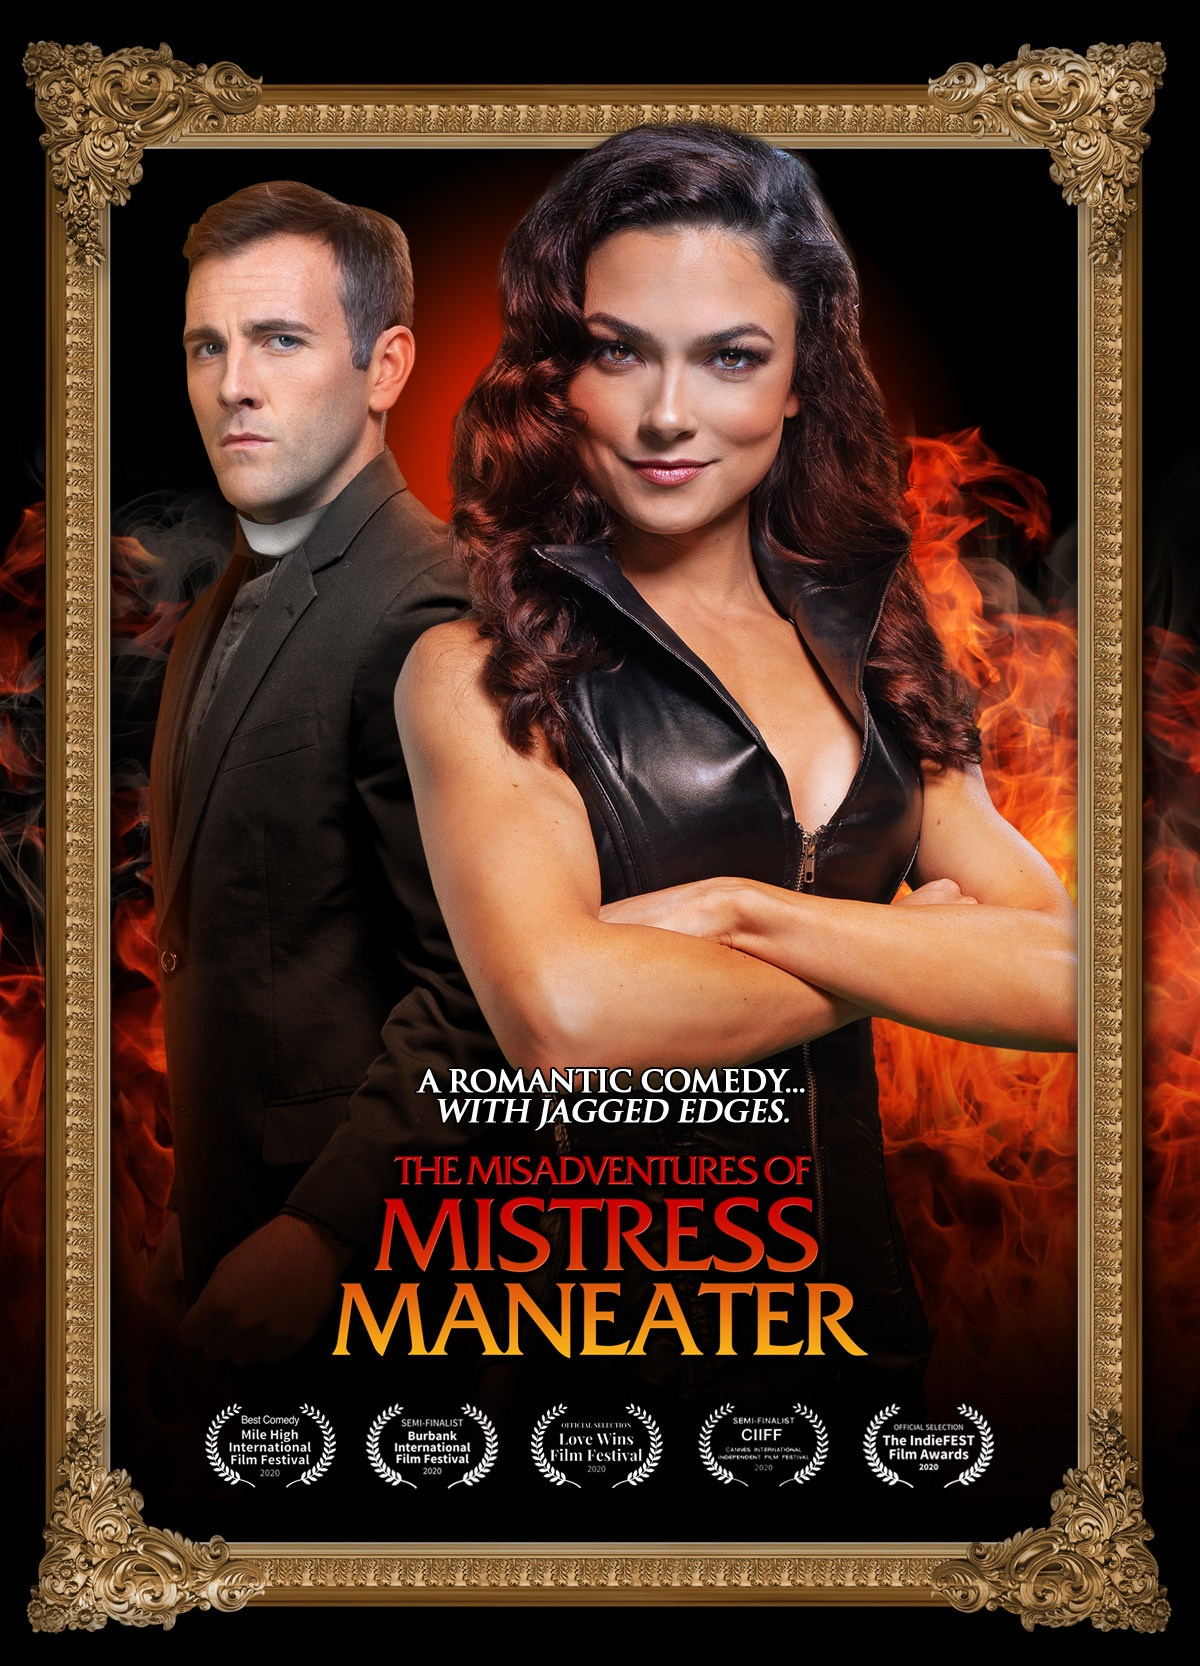 The Misadventures Of Mistress Maneater 2020 English AMZN WEBRip 720p 800MB | 450MB Download